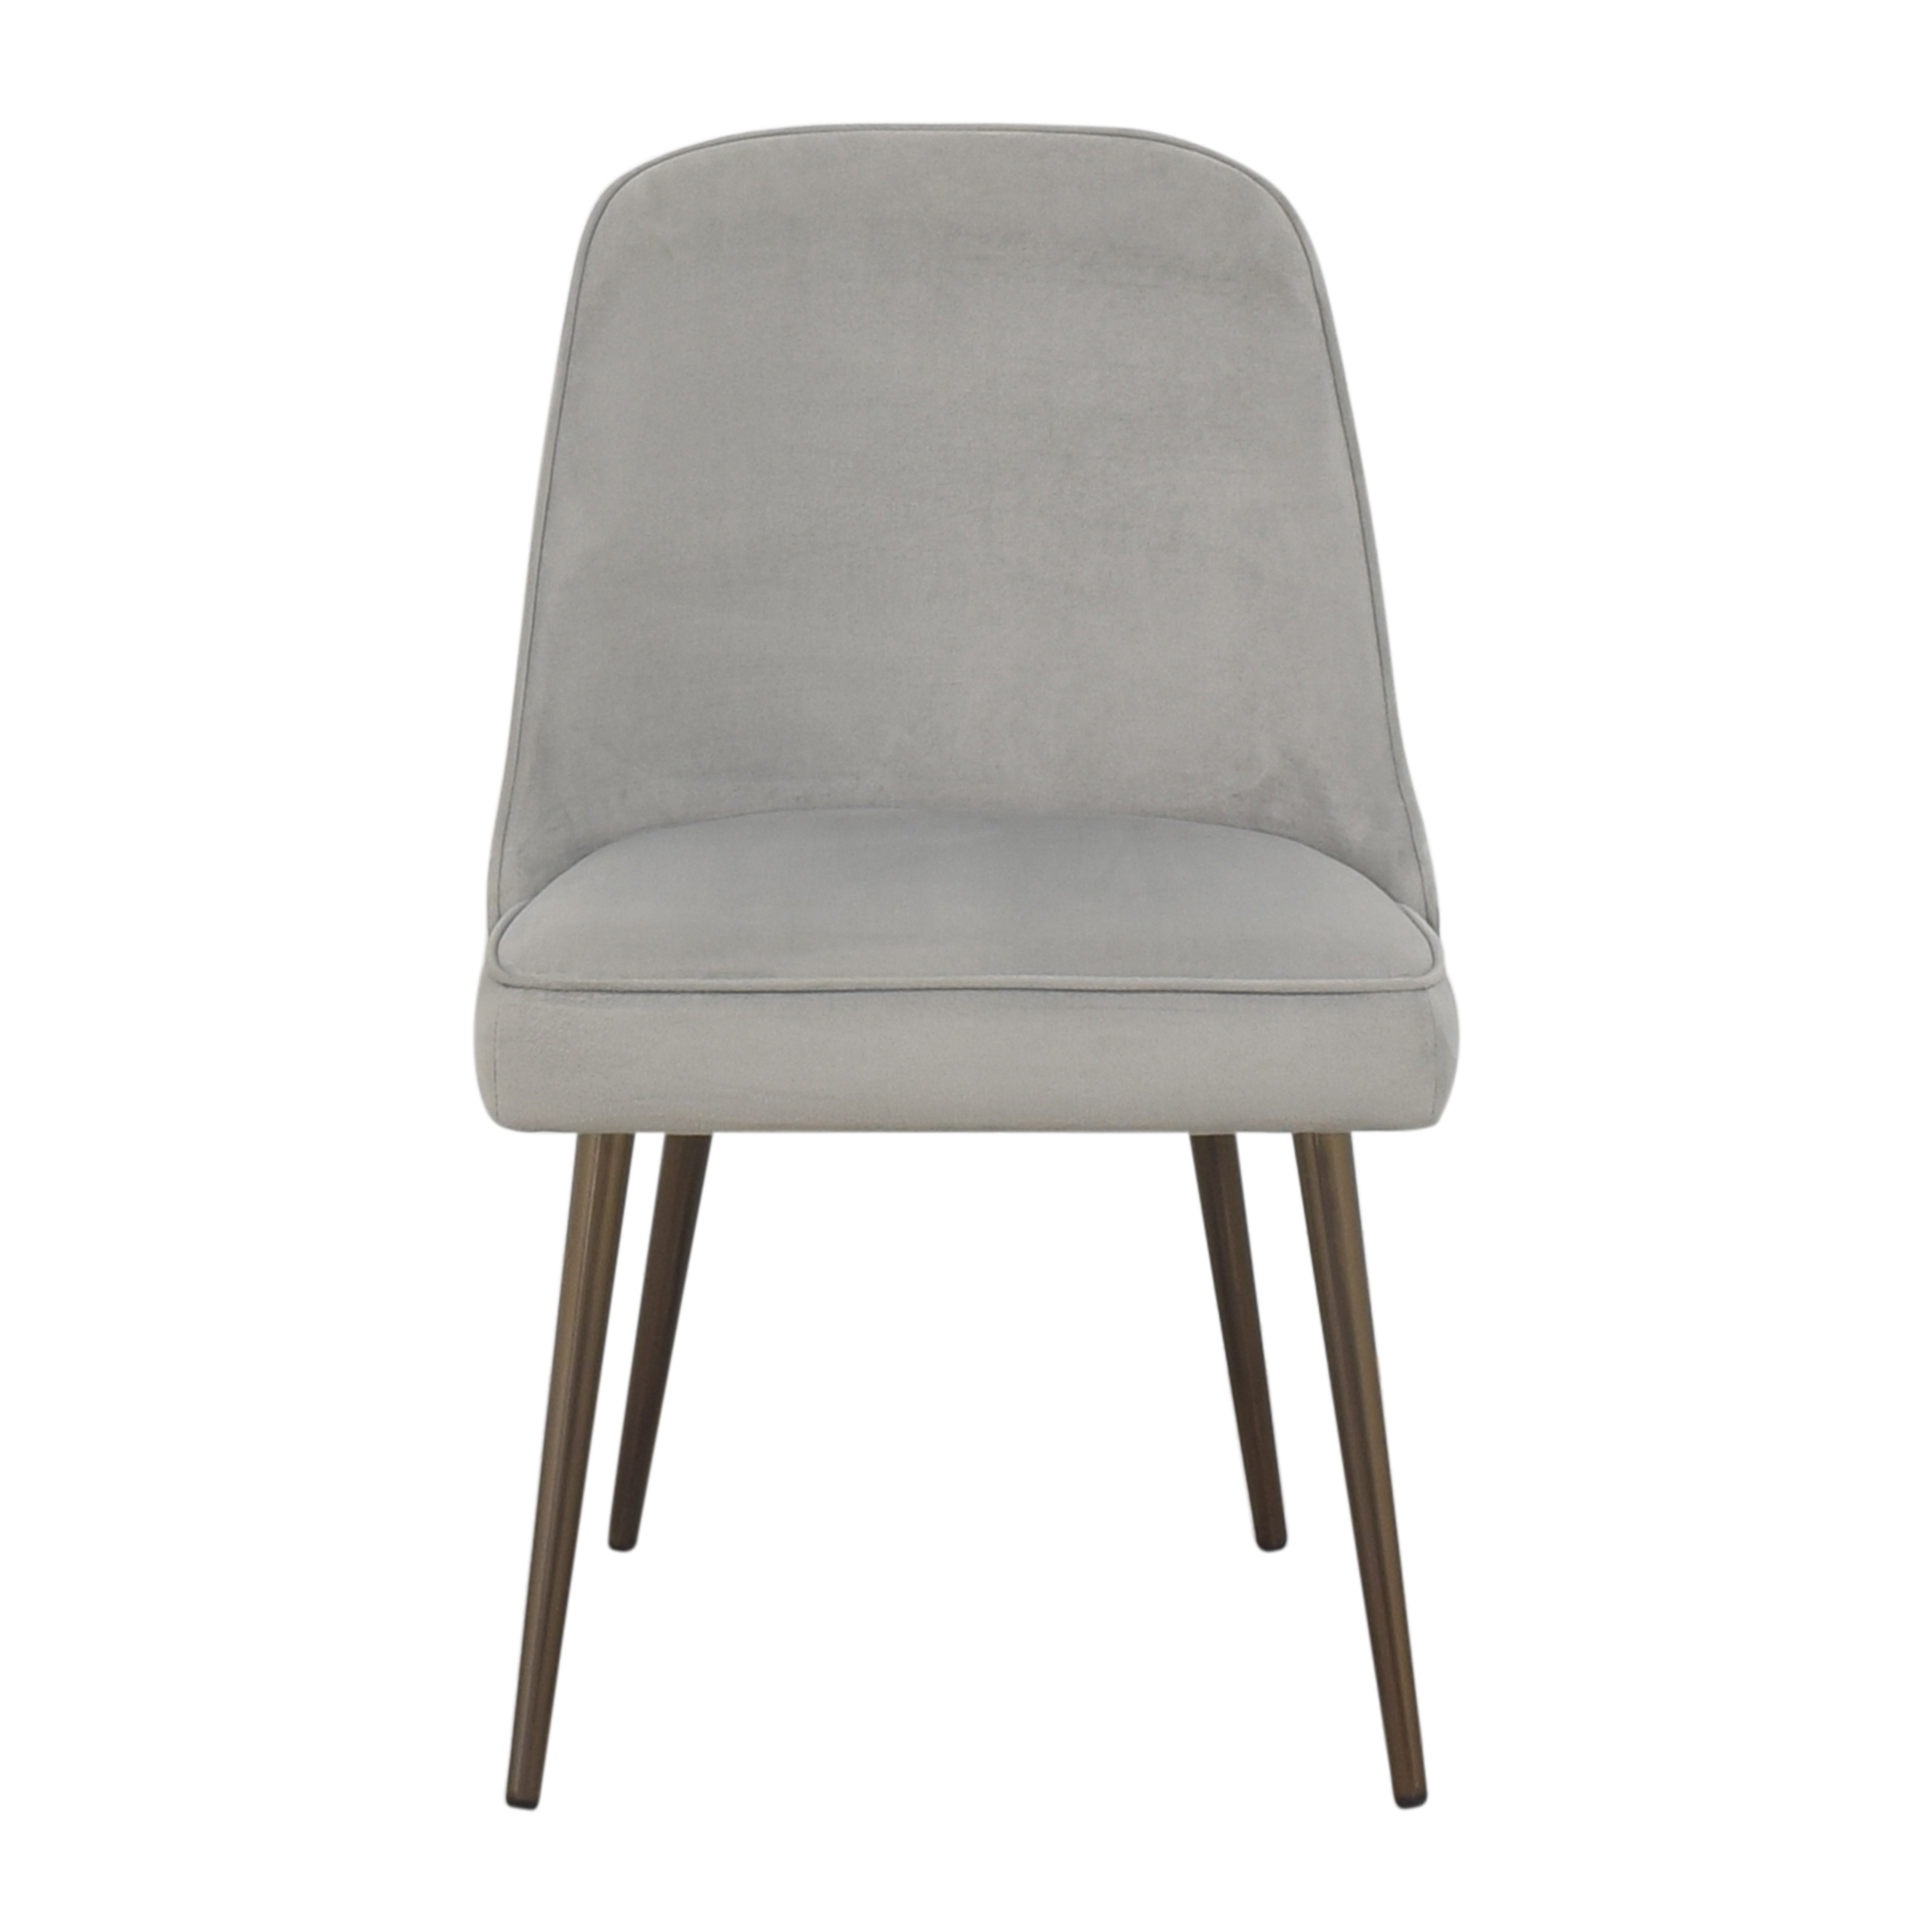 West Elm West Elm Mid Century Upholstered Dining Chair second hand